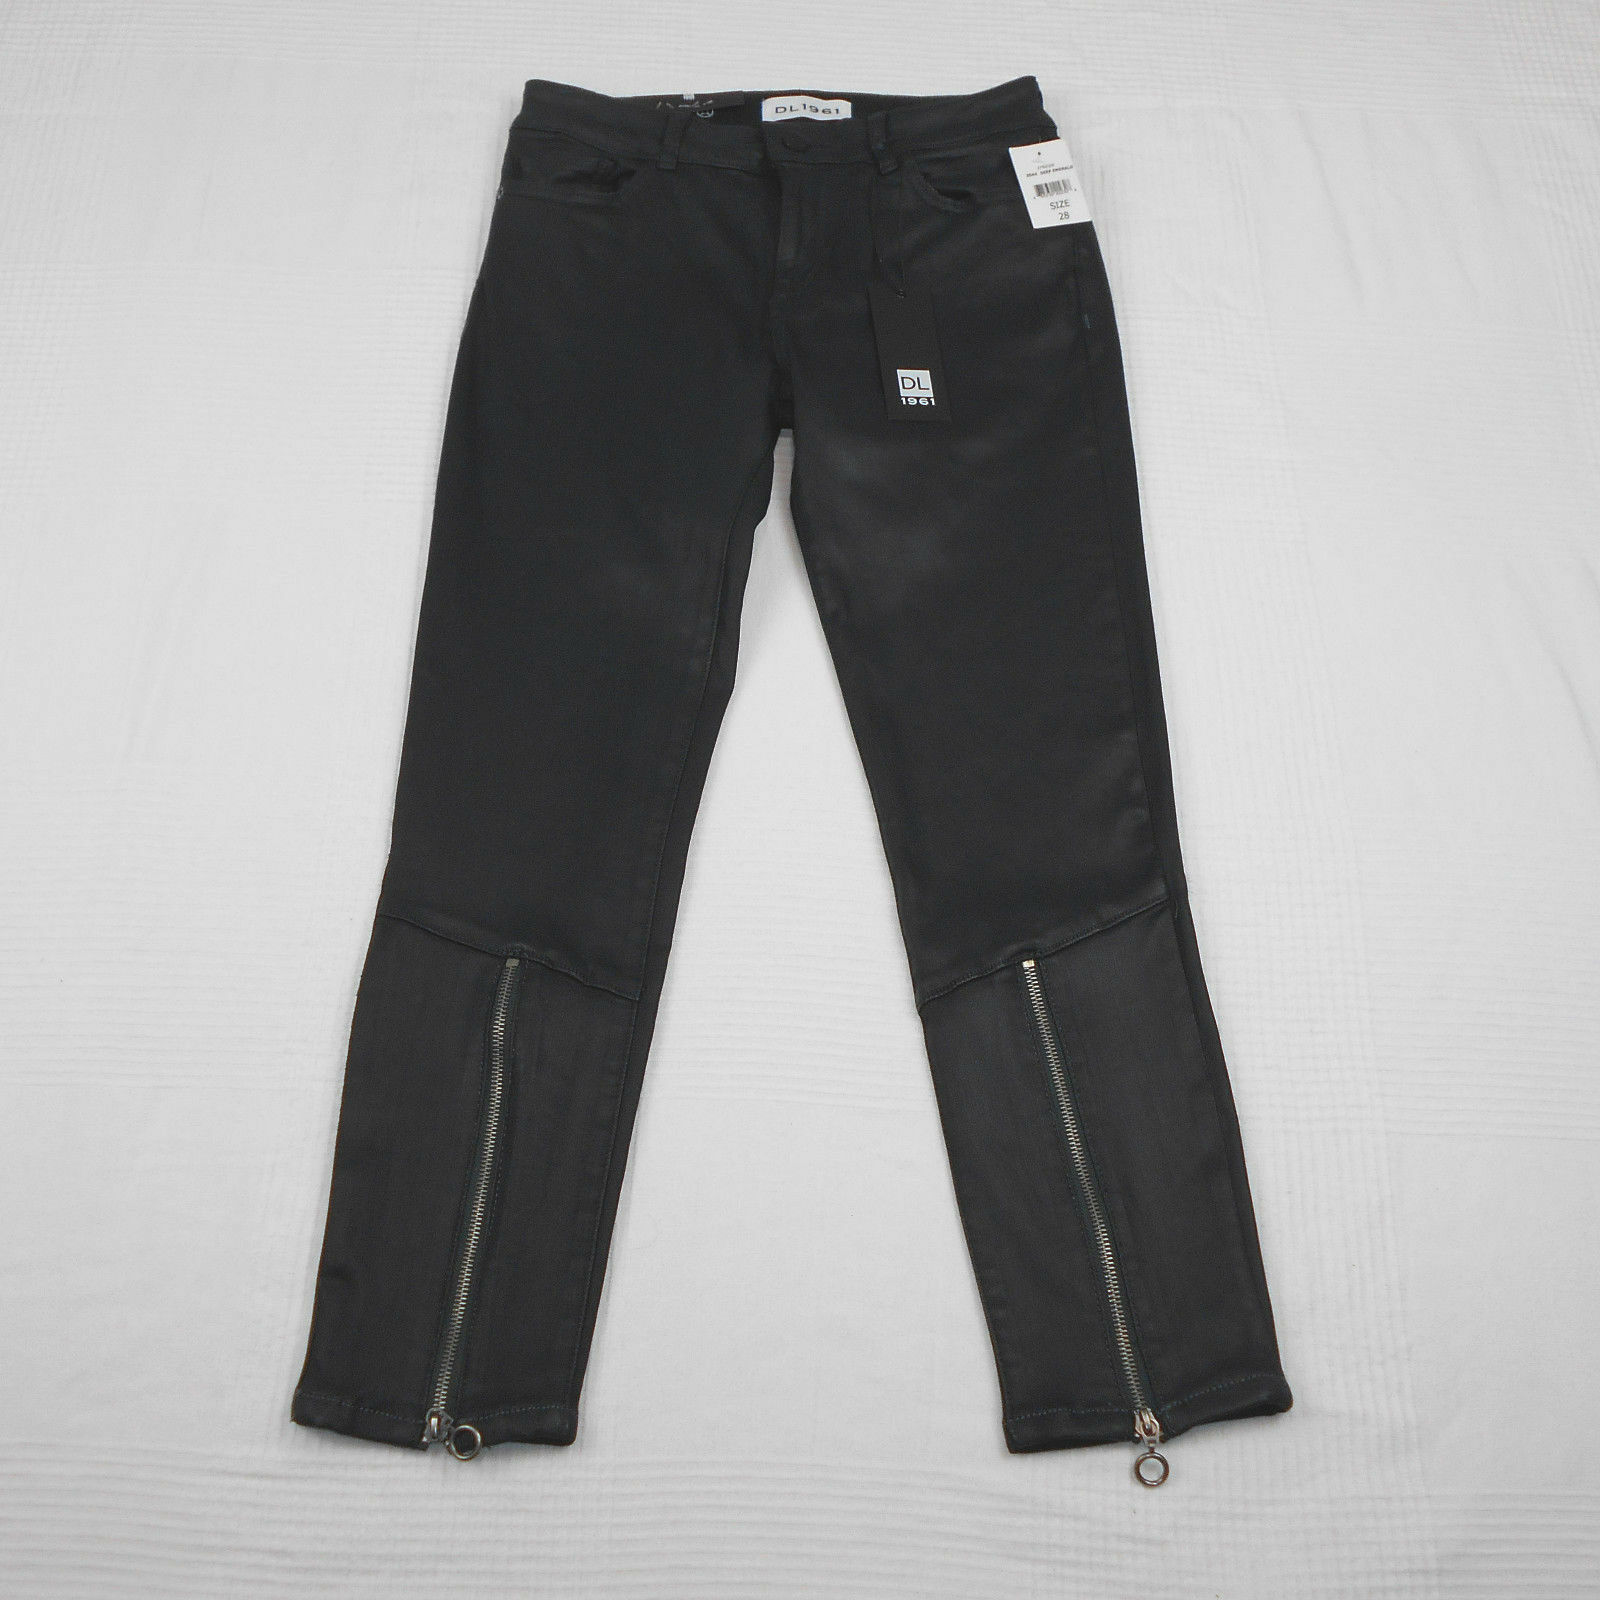 DL1961 Florence Coated Denim Pants Skinny Jeans Deep Emerald Instasculpt Crop 28